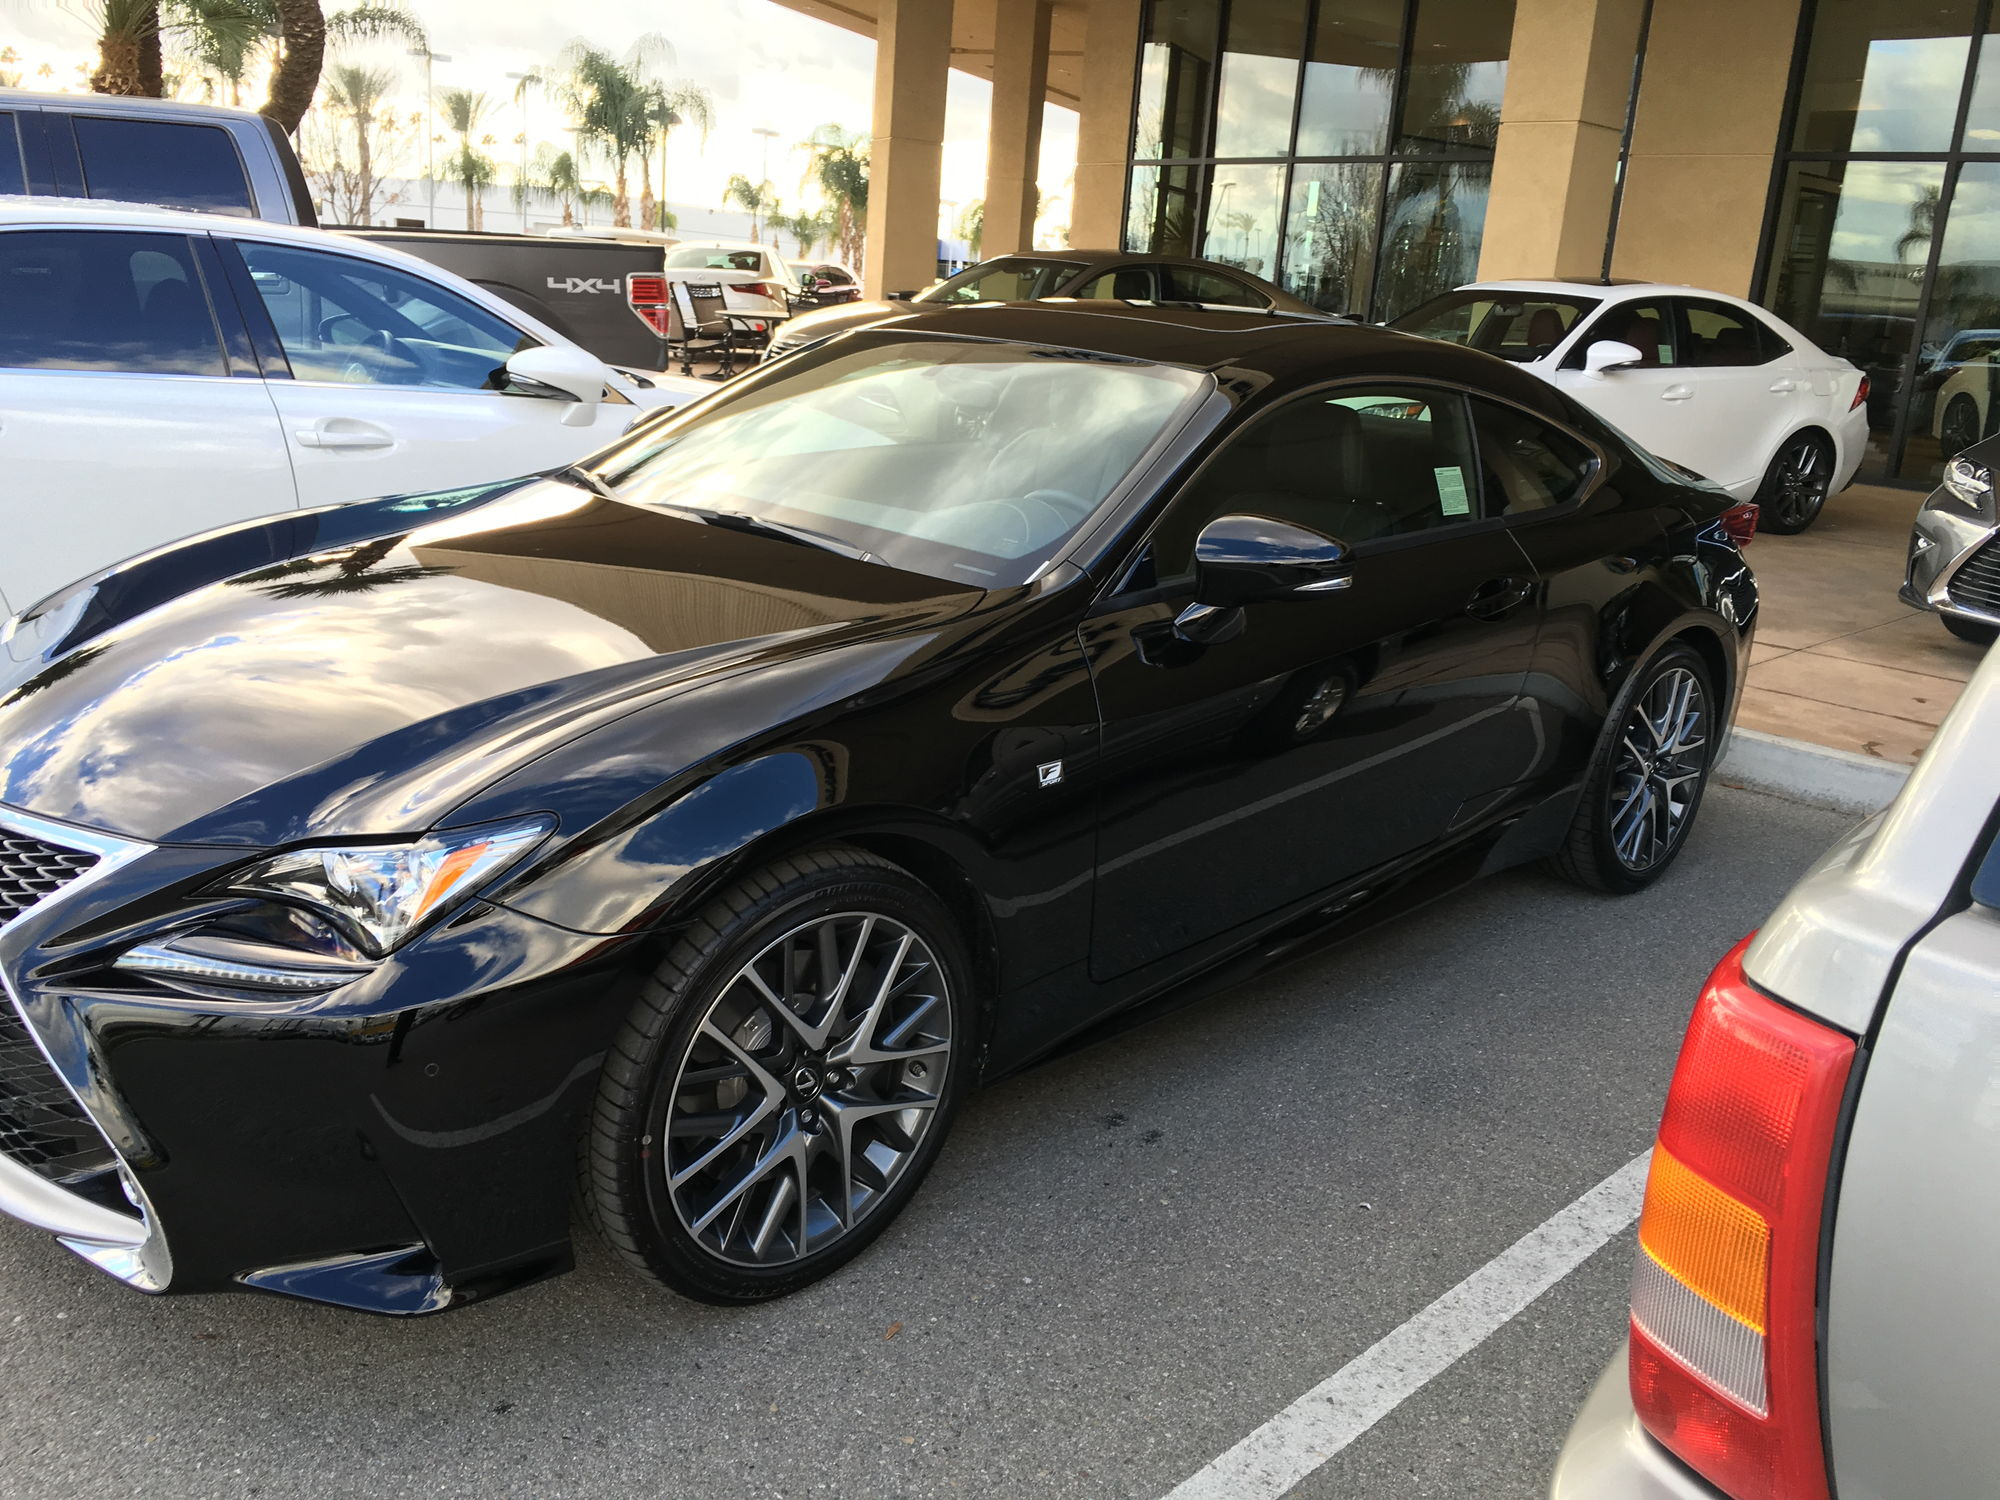 Just picked up my new car yesterday got a smoken deal on a lease looking forward to meeting everyone here s a few pics of my new ride for the next 24